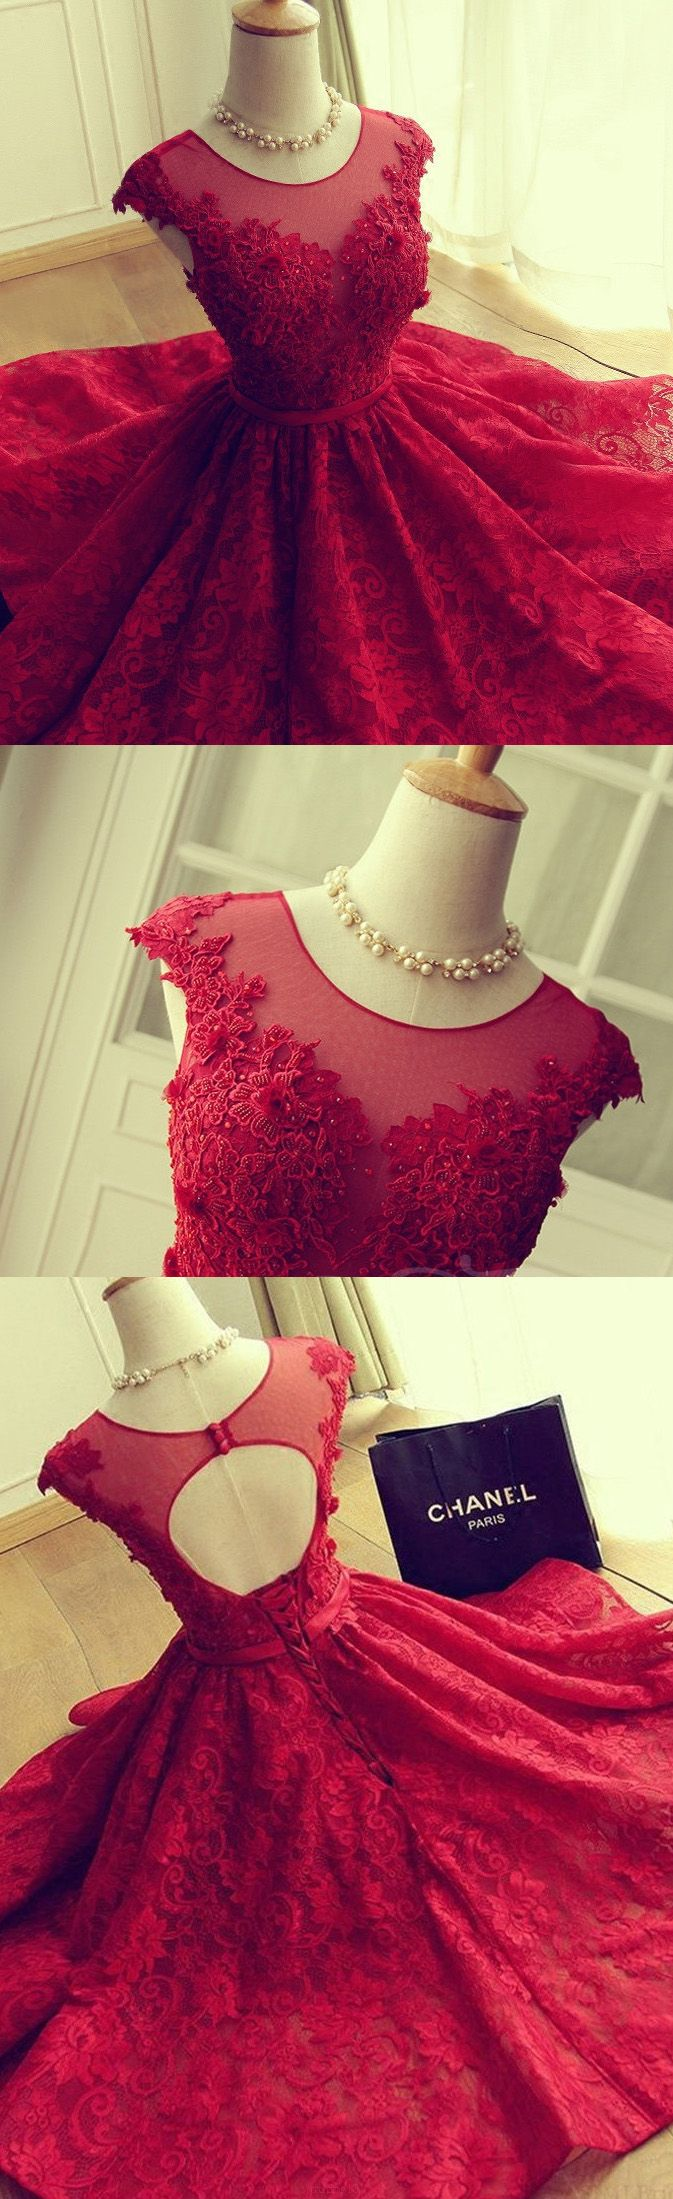 Red Prom Dresses, Short Prom Dresses, Lace Prom Dresses, Prom Dresses Short, Red Lace Prom dresses, Homecoming Dresses Short, Short Homecoming Dresses, Red Homecoming Dresses, A Line dresses, Red Lace dresses, Open-back Party Dresses, Lace Party Dresses, A line Prom Dresses, A-line/Princess Party Dresses